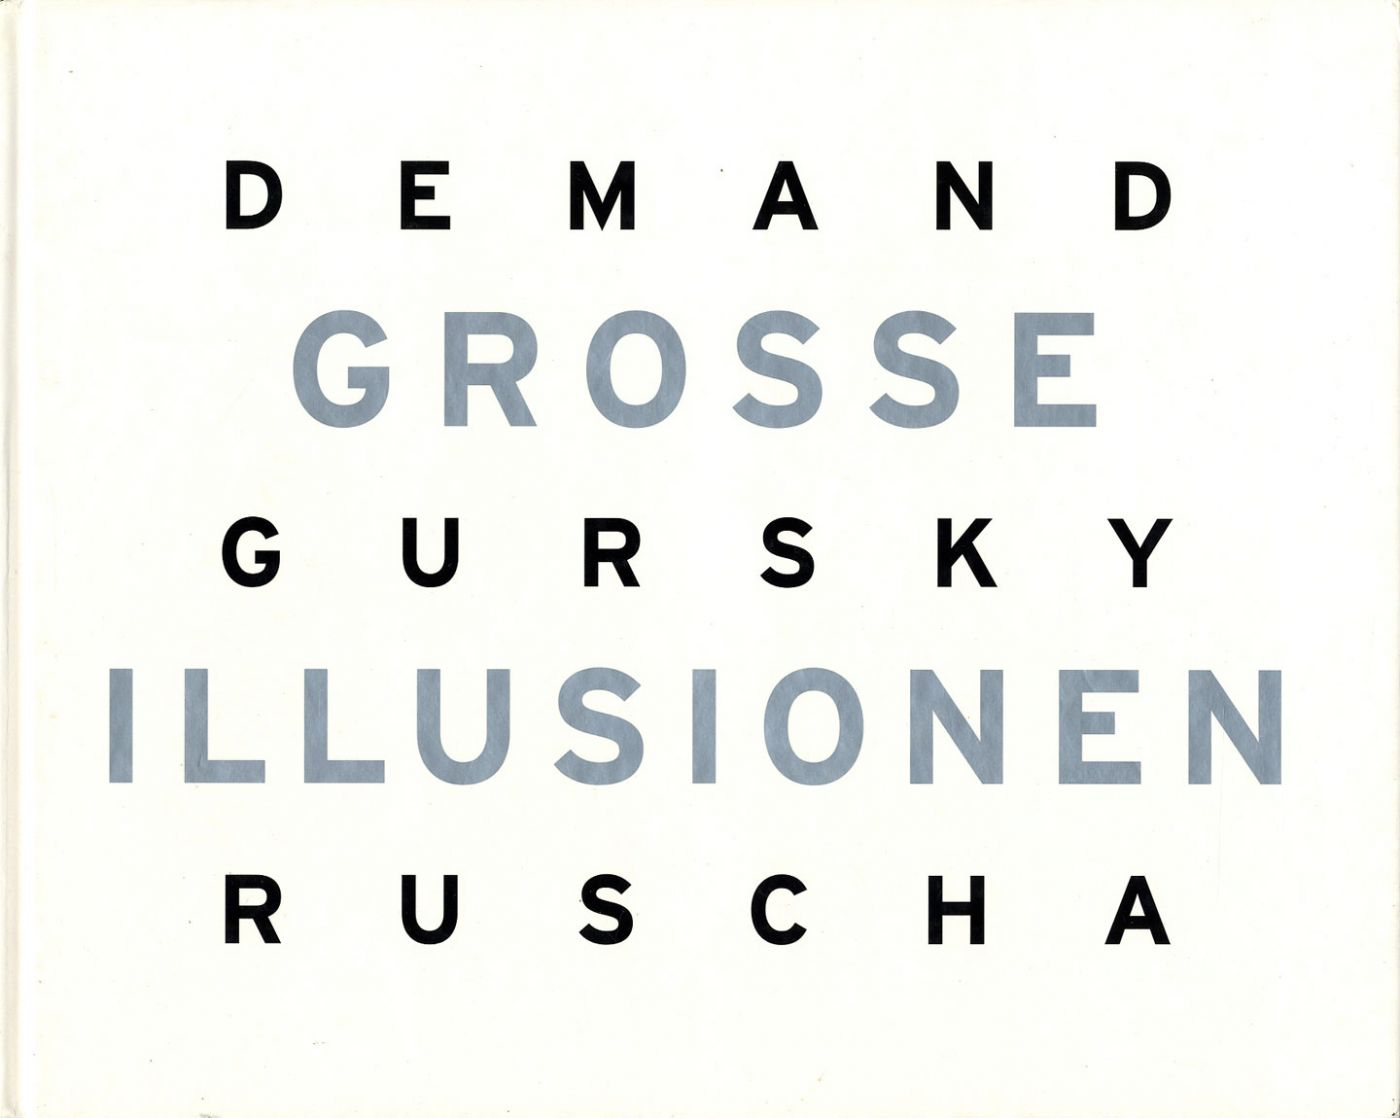 Grosse Illusionen: Thomas Demand, Andreas Gursky, Ed Ruscha (German Edition)